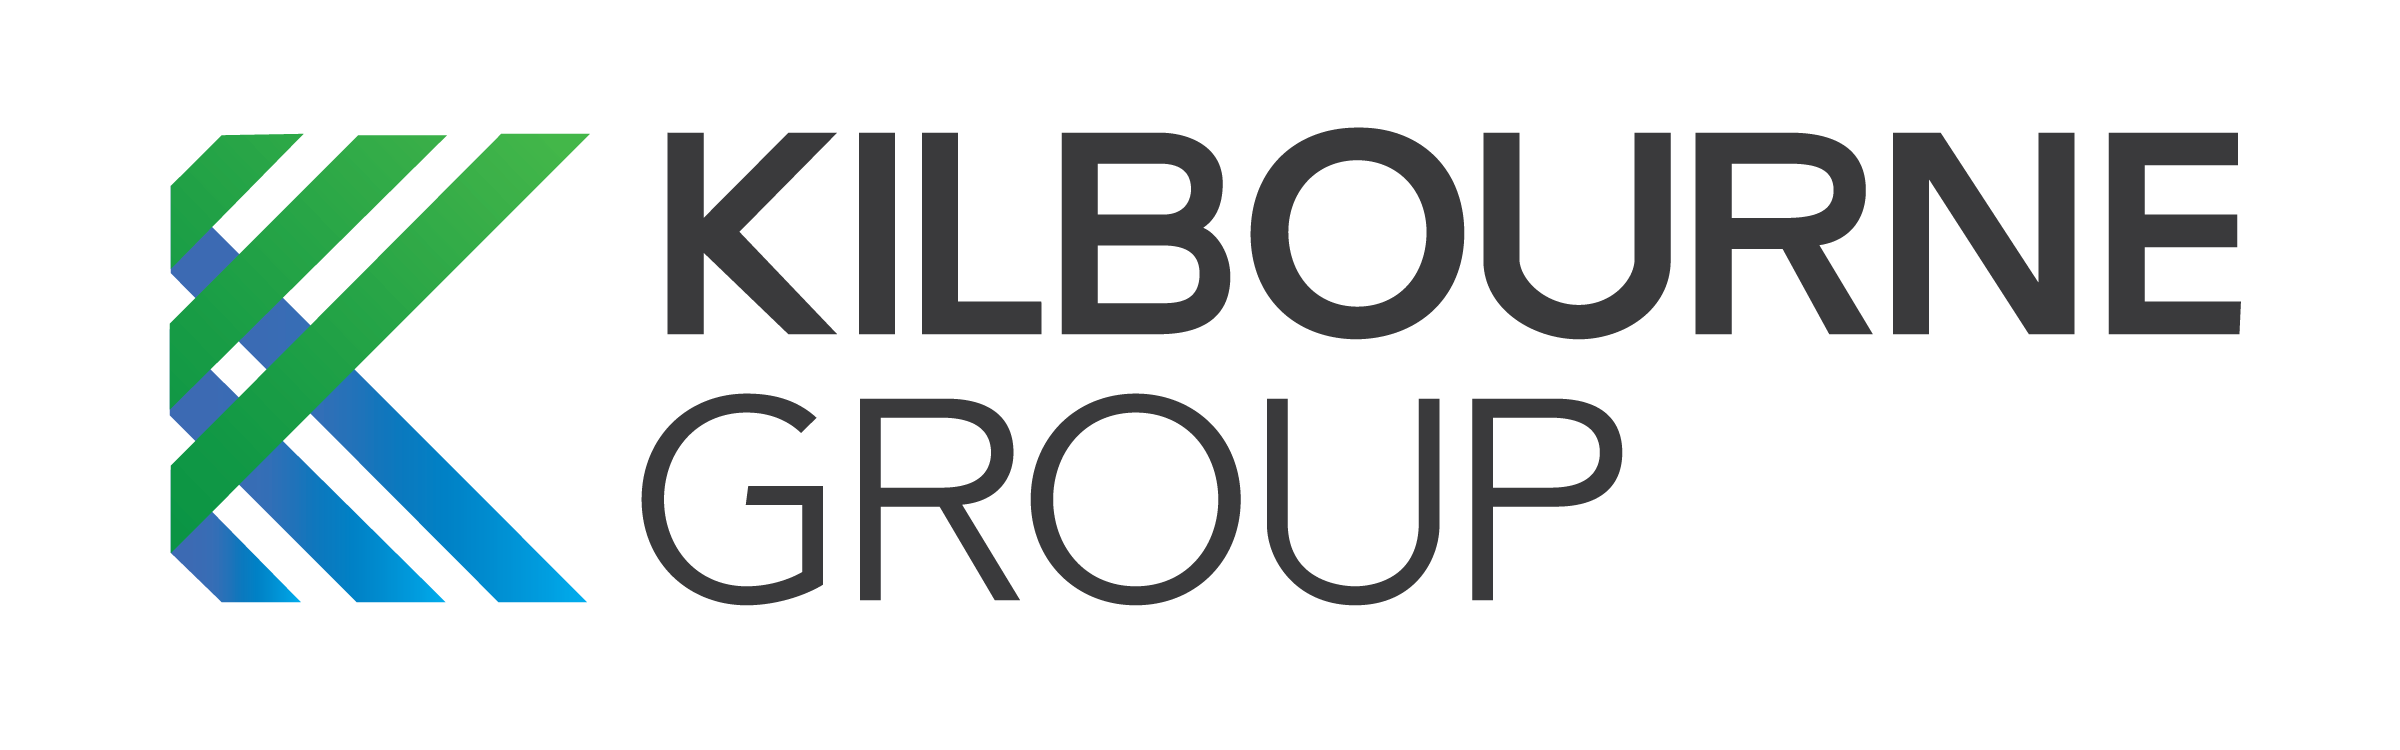 Kilbourne_Logo_Horiz_Gradient_Color.png